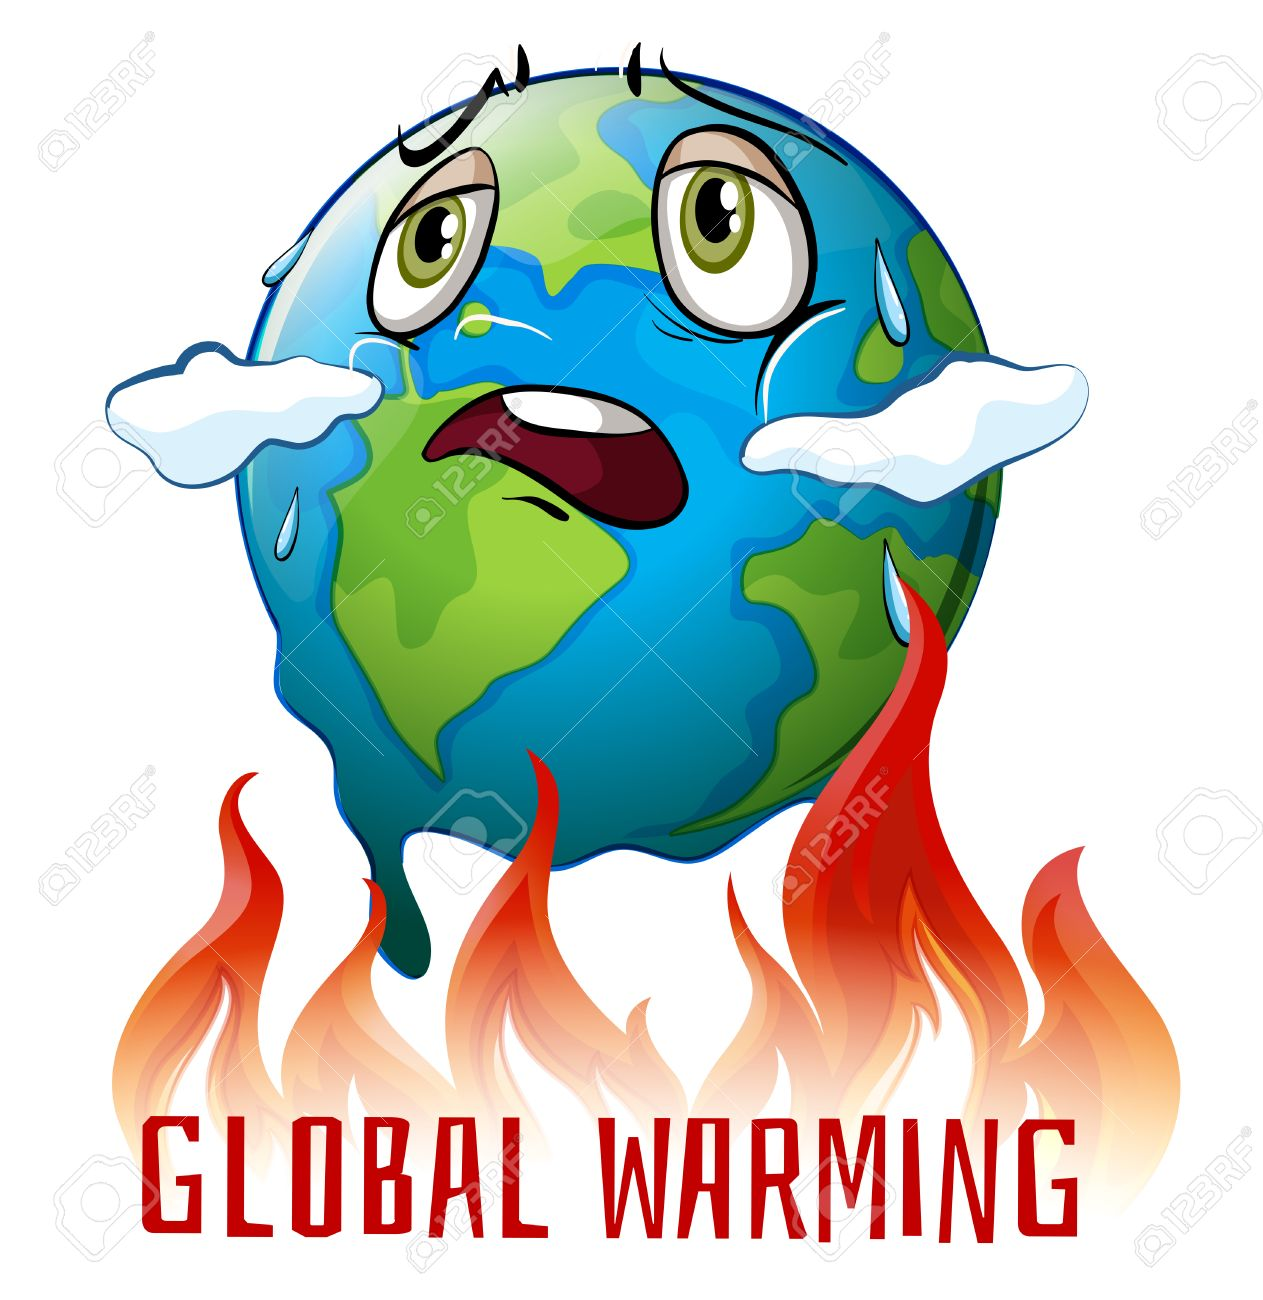 A Poster Based On Global Warming